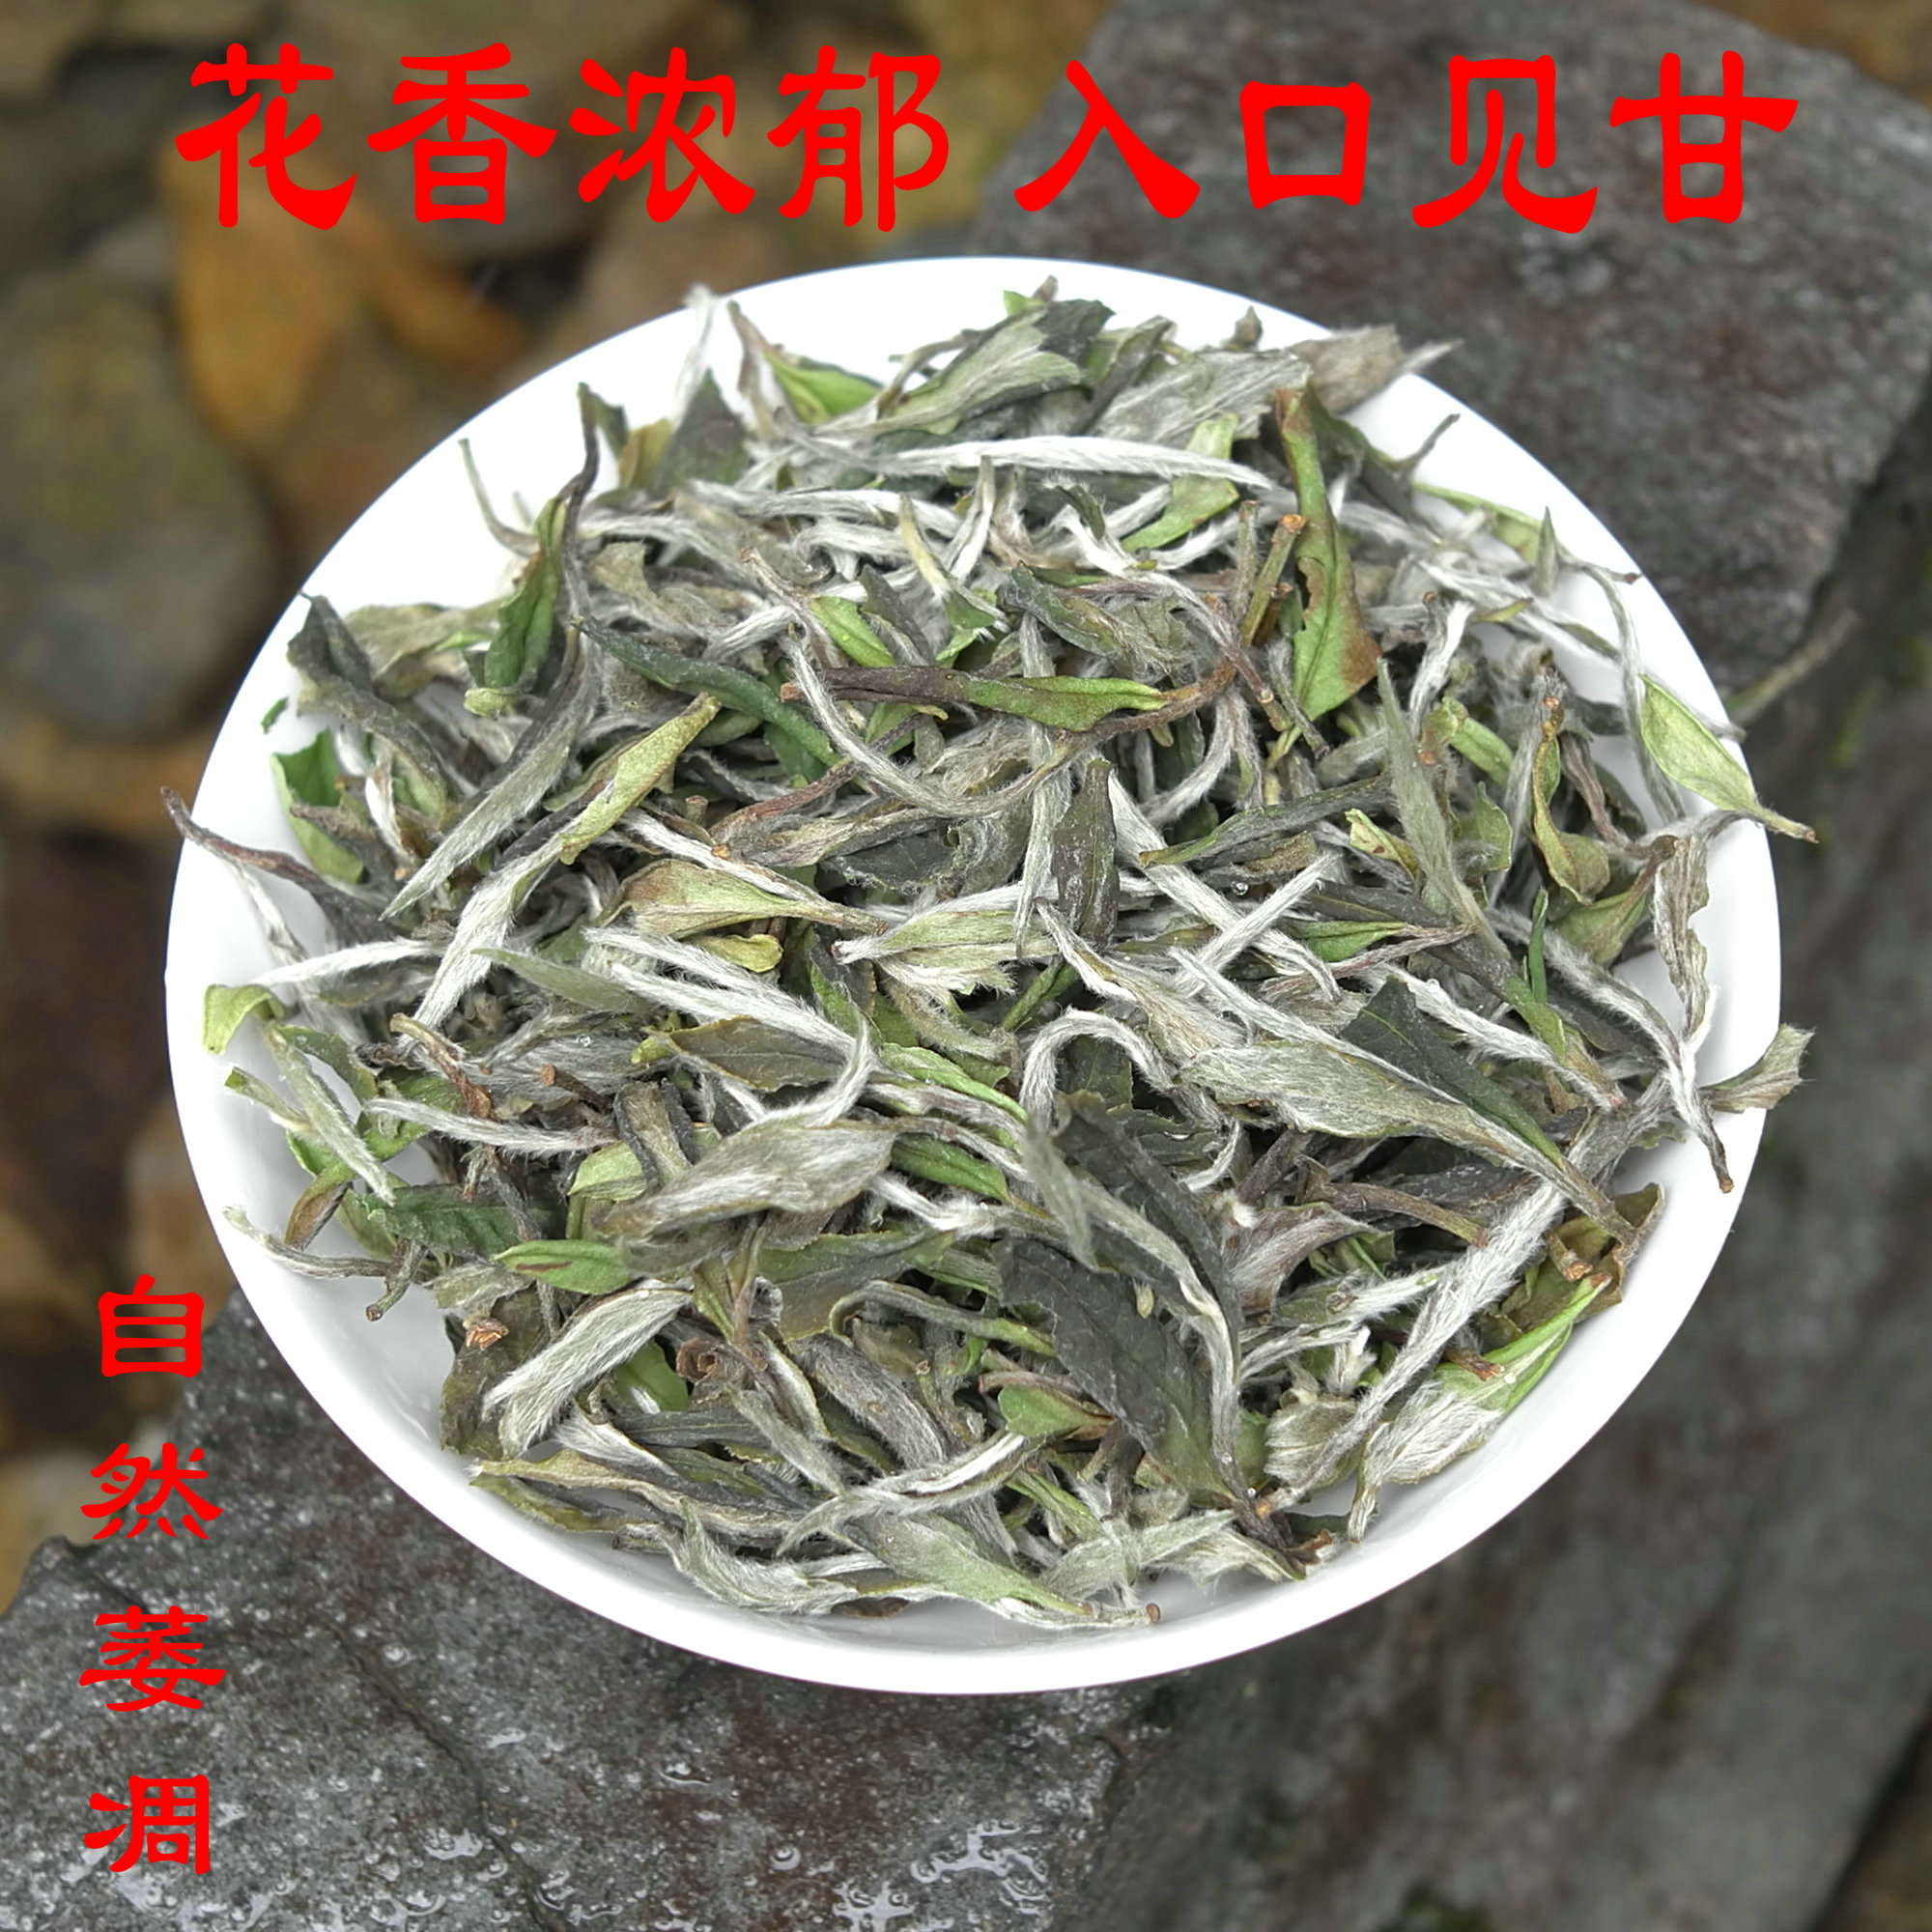 Dashan White Tea Fuding White Tea Authentic Mountain 2017 Wilderness White Peony Tea 100g